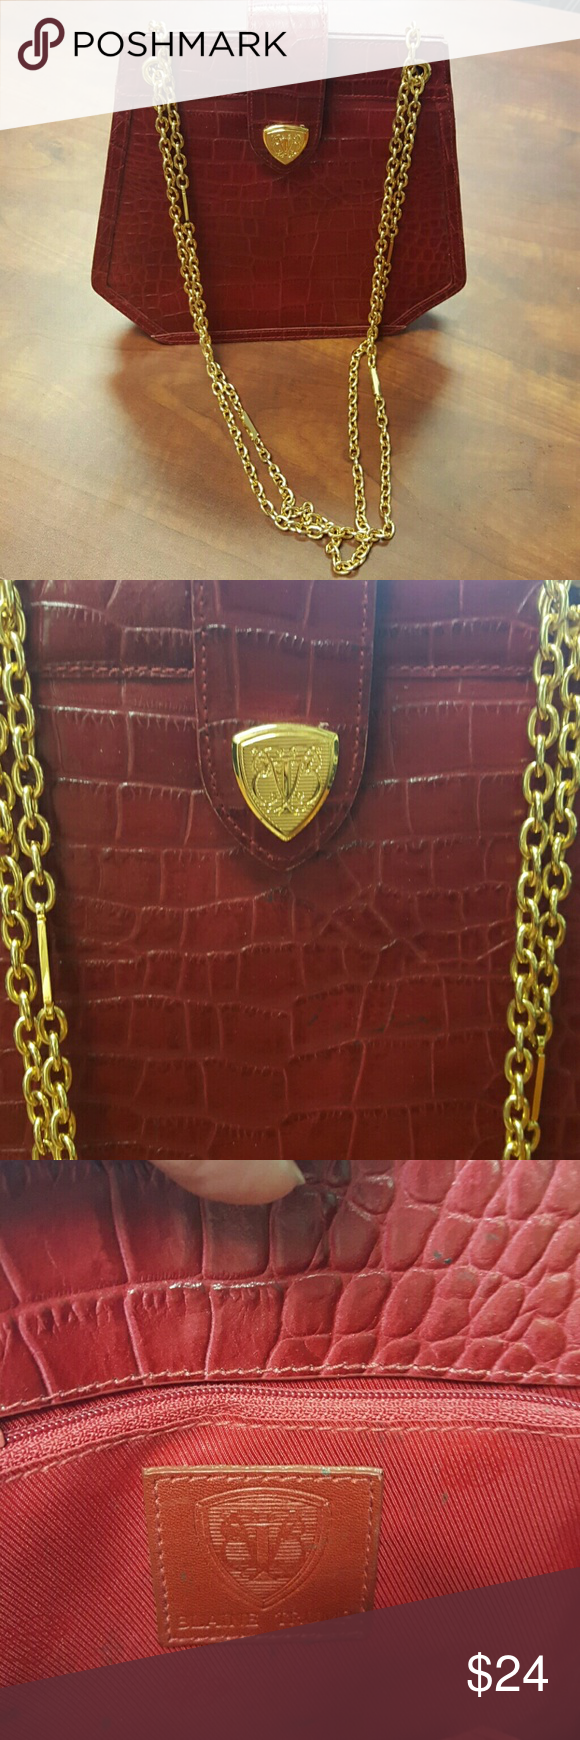 Red Blaine Trump Purse Croc Embossed Leather With Gold Tone Chains In Gret Used Condition But Has Stains Inside Bags Shoulder